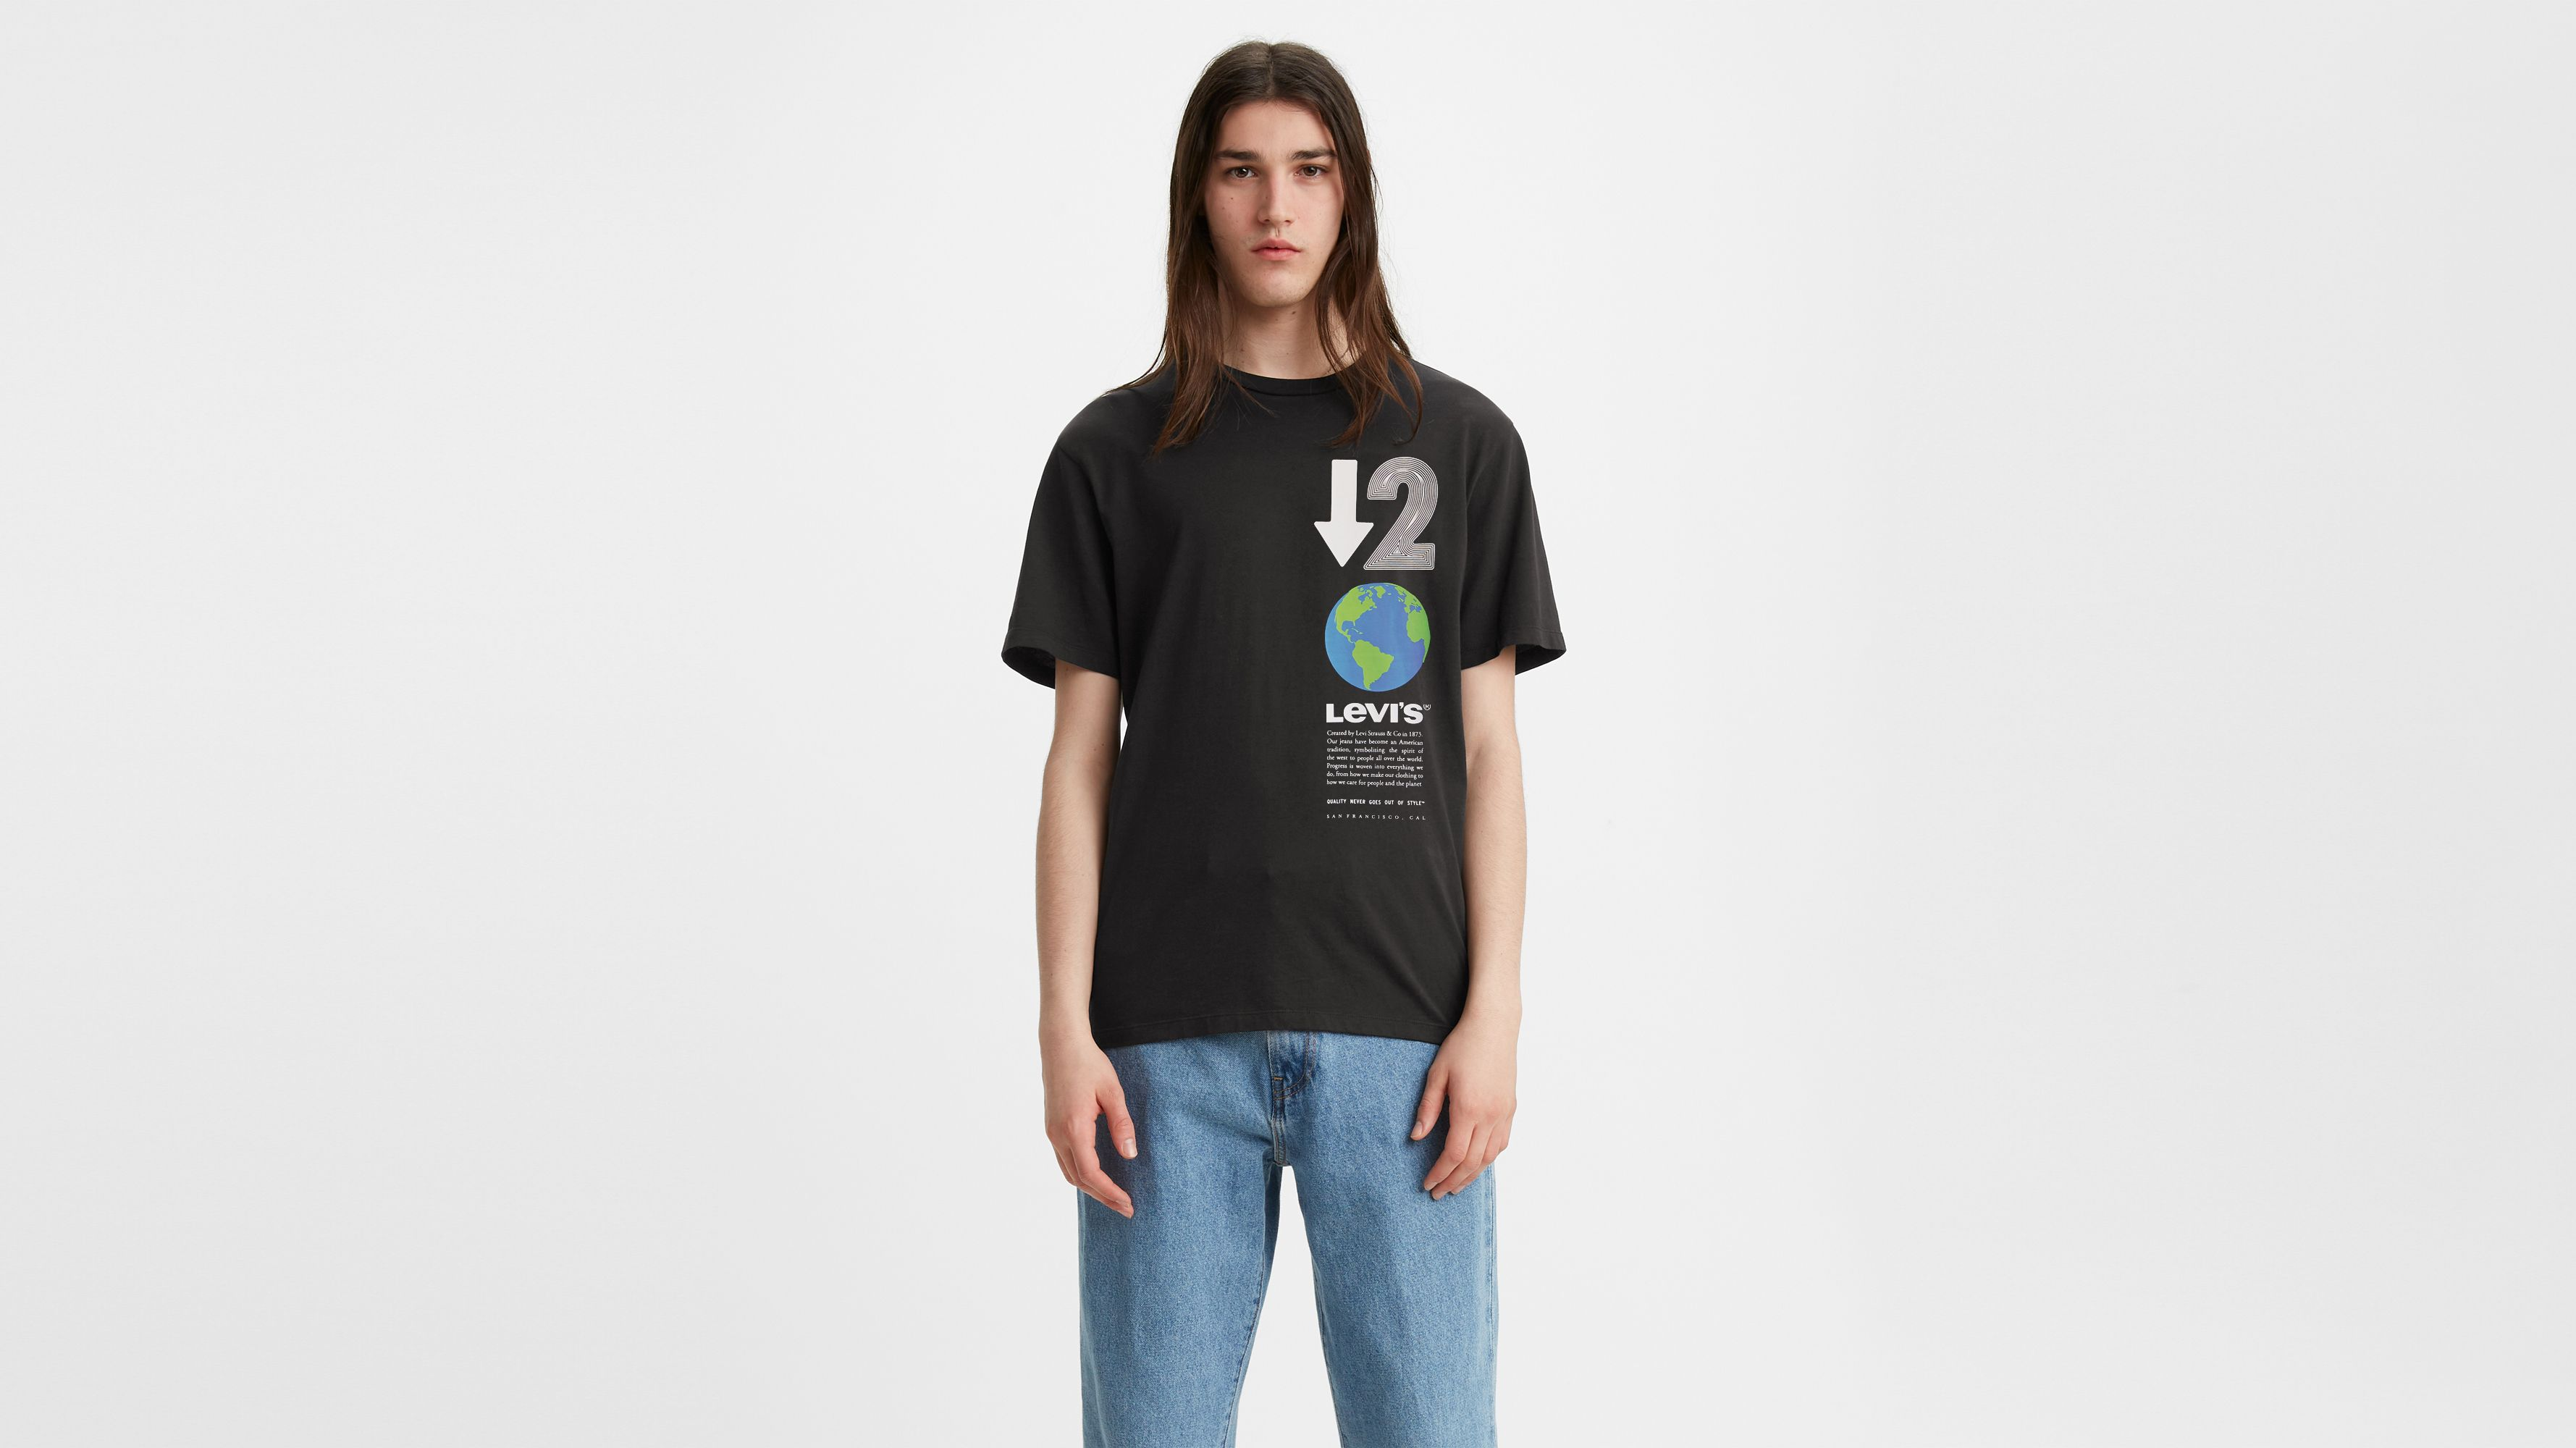 Levis Graphic Crewneck Tee Shirt